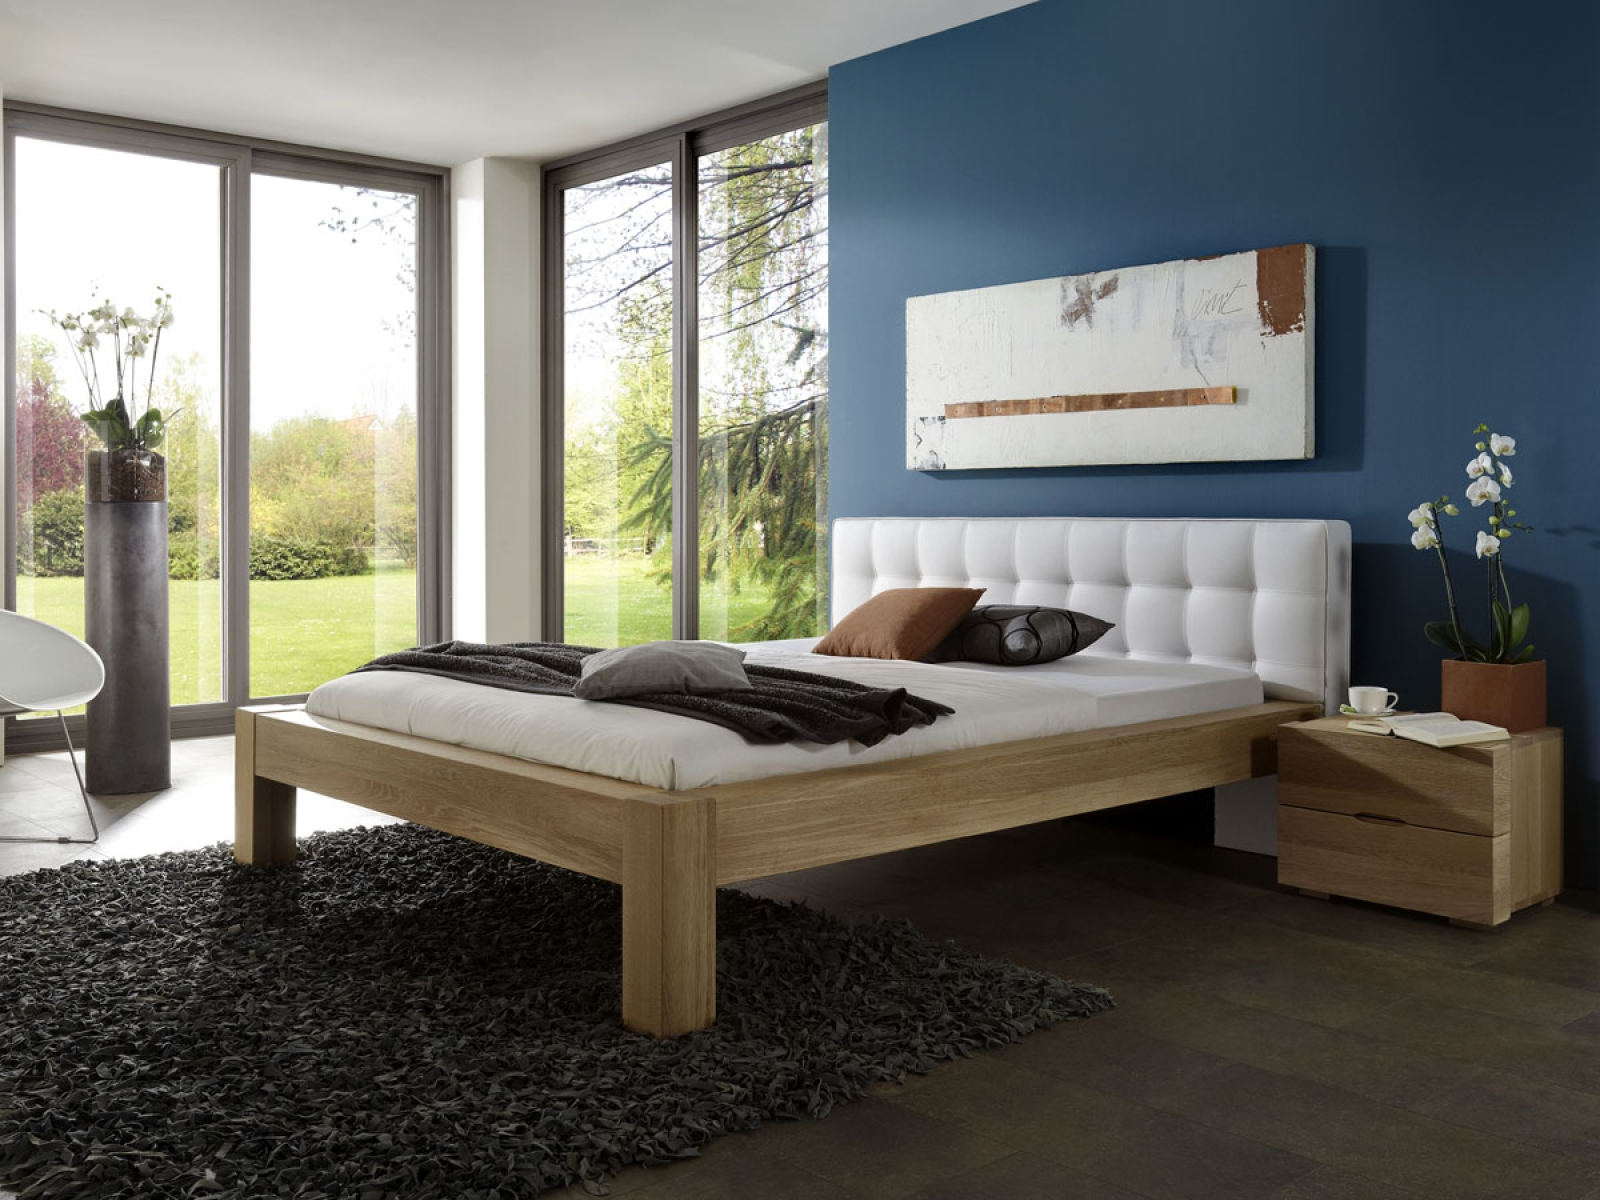 kernholz massivholz select atlantik wasserbetten. Black Bedroom Furniture Sets. Home Design Ideas